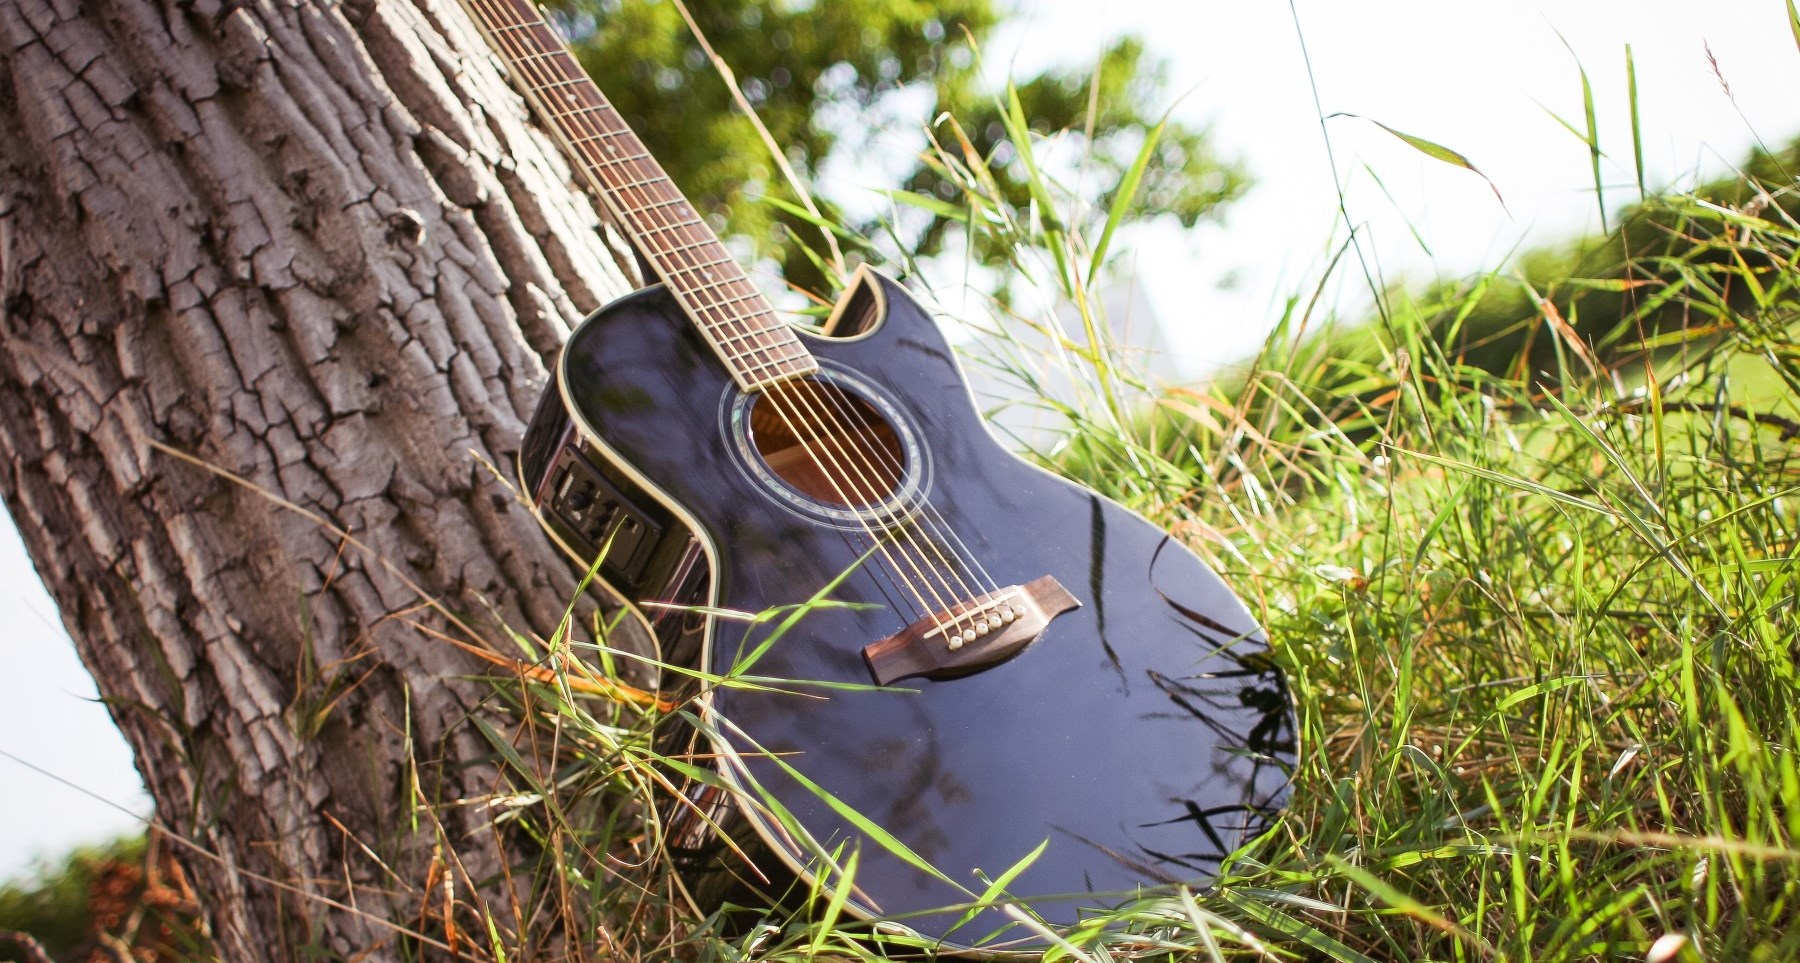 Guitar leaning against tree